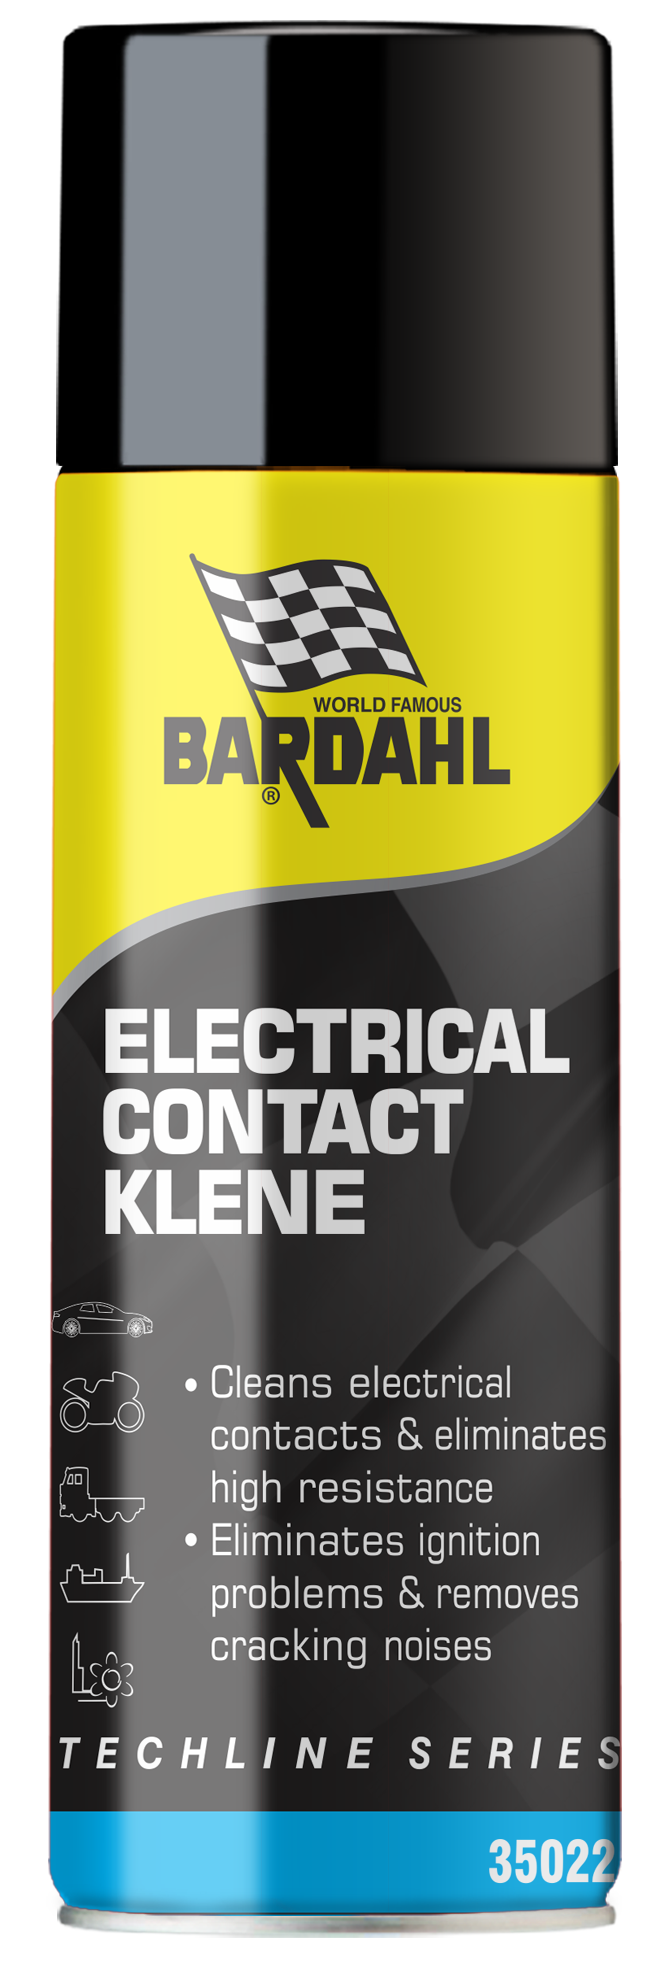 Electrical Contact Klene